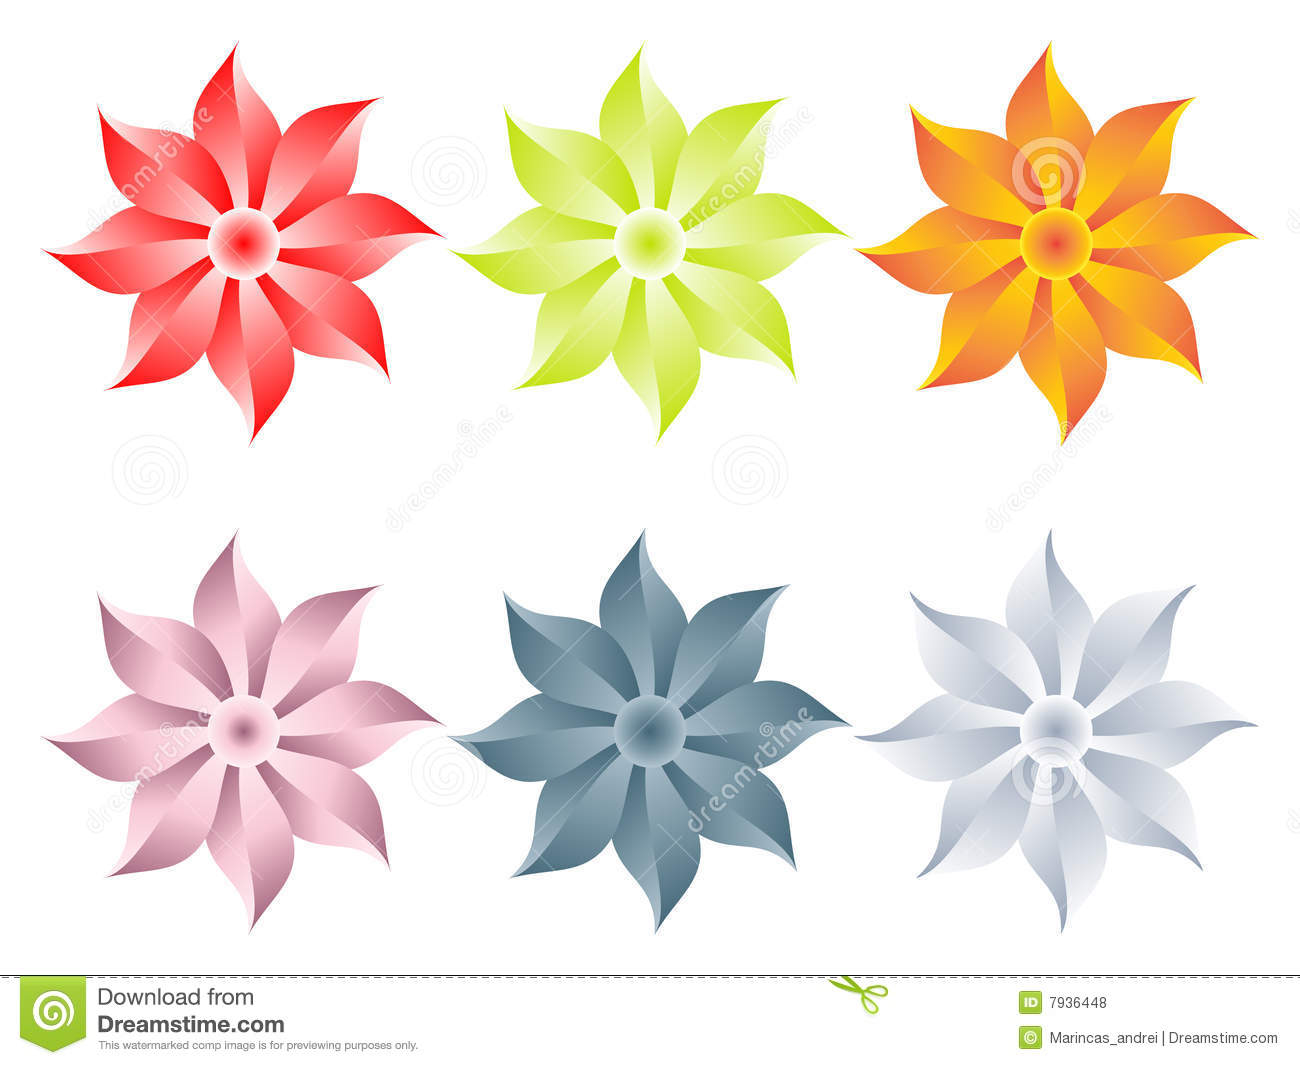 Flowers different colors royalty free stock photos image for What makes flowers different colors